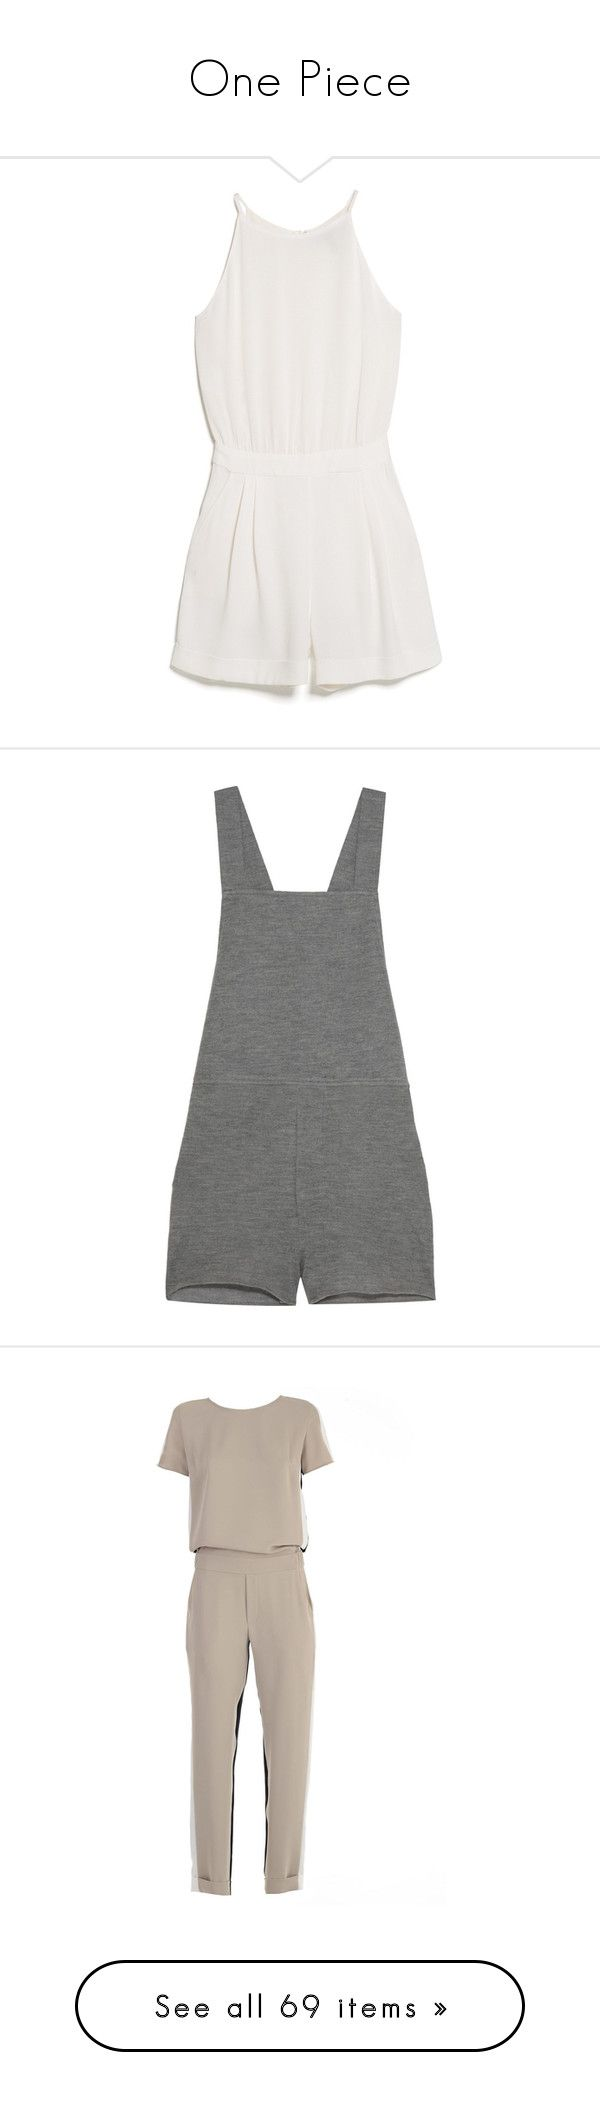 """""""One Piece"""" by isthelastofus ❤ liked on Polyvore featuring jumpsuits, rompers, dresses, playsuits, jumpsuit, halter top, playsuit jumpsuit, mango jumpsuit, sleeveless rompers and sleeveless romper"""